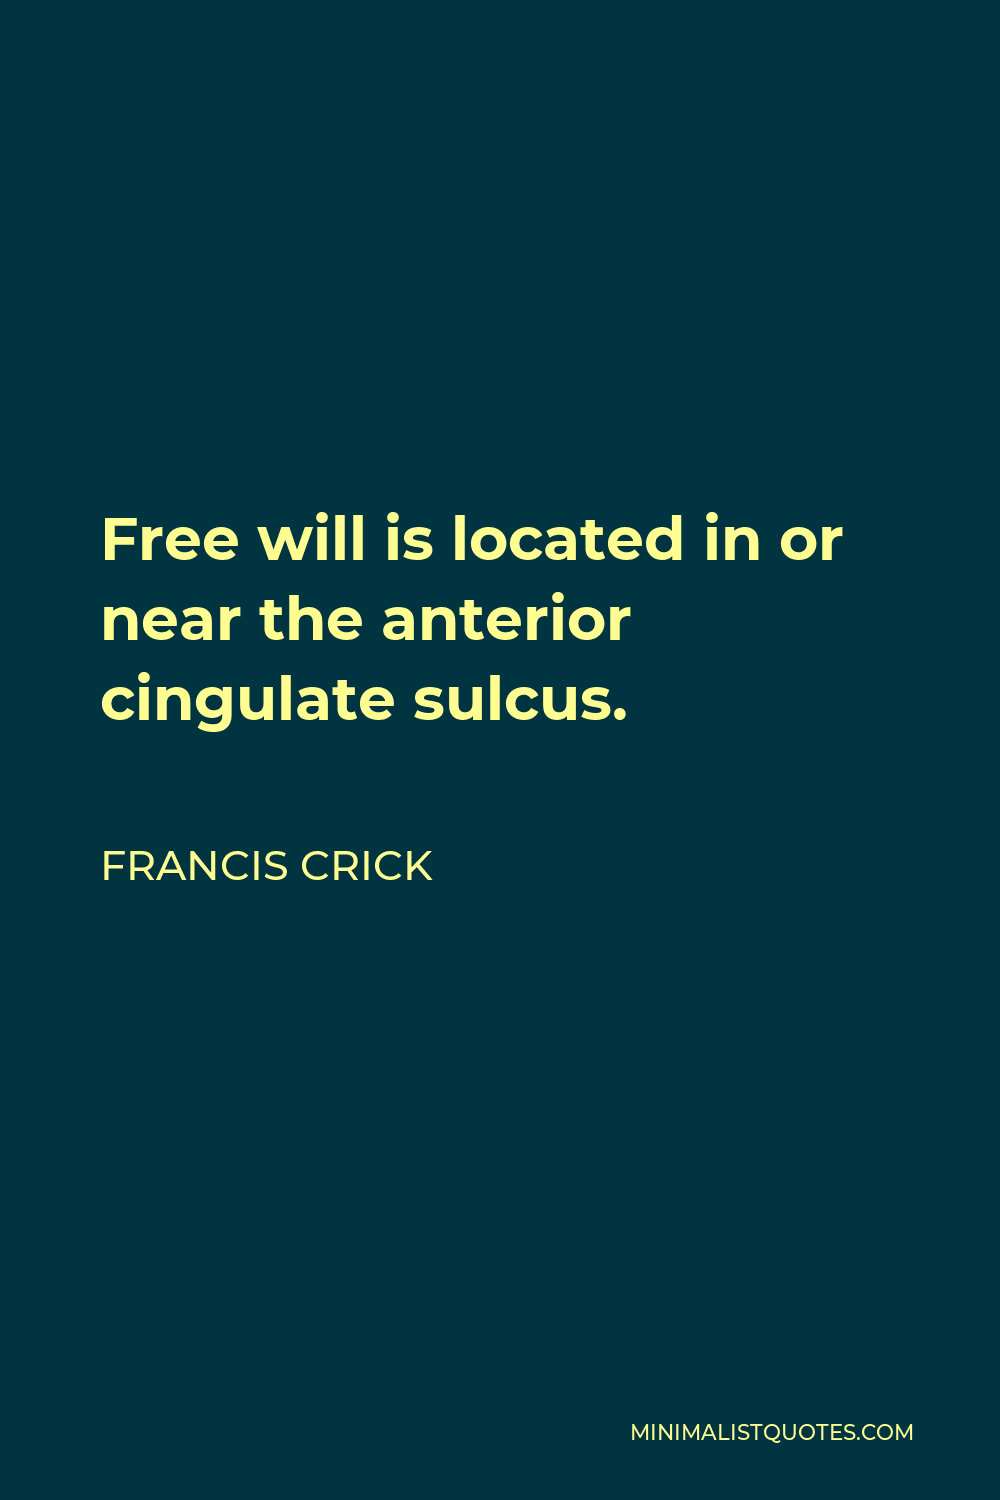 Francis Crick Quote - Free will is located in or near the anterior cingulate sulcus.